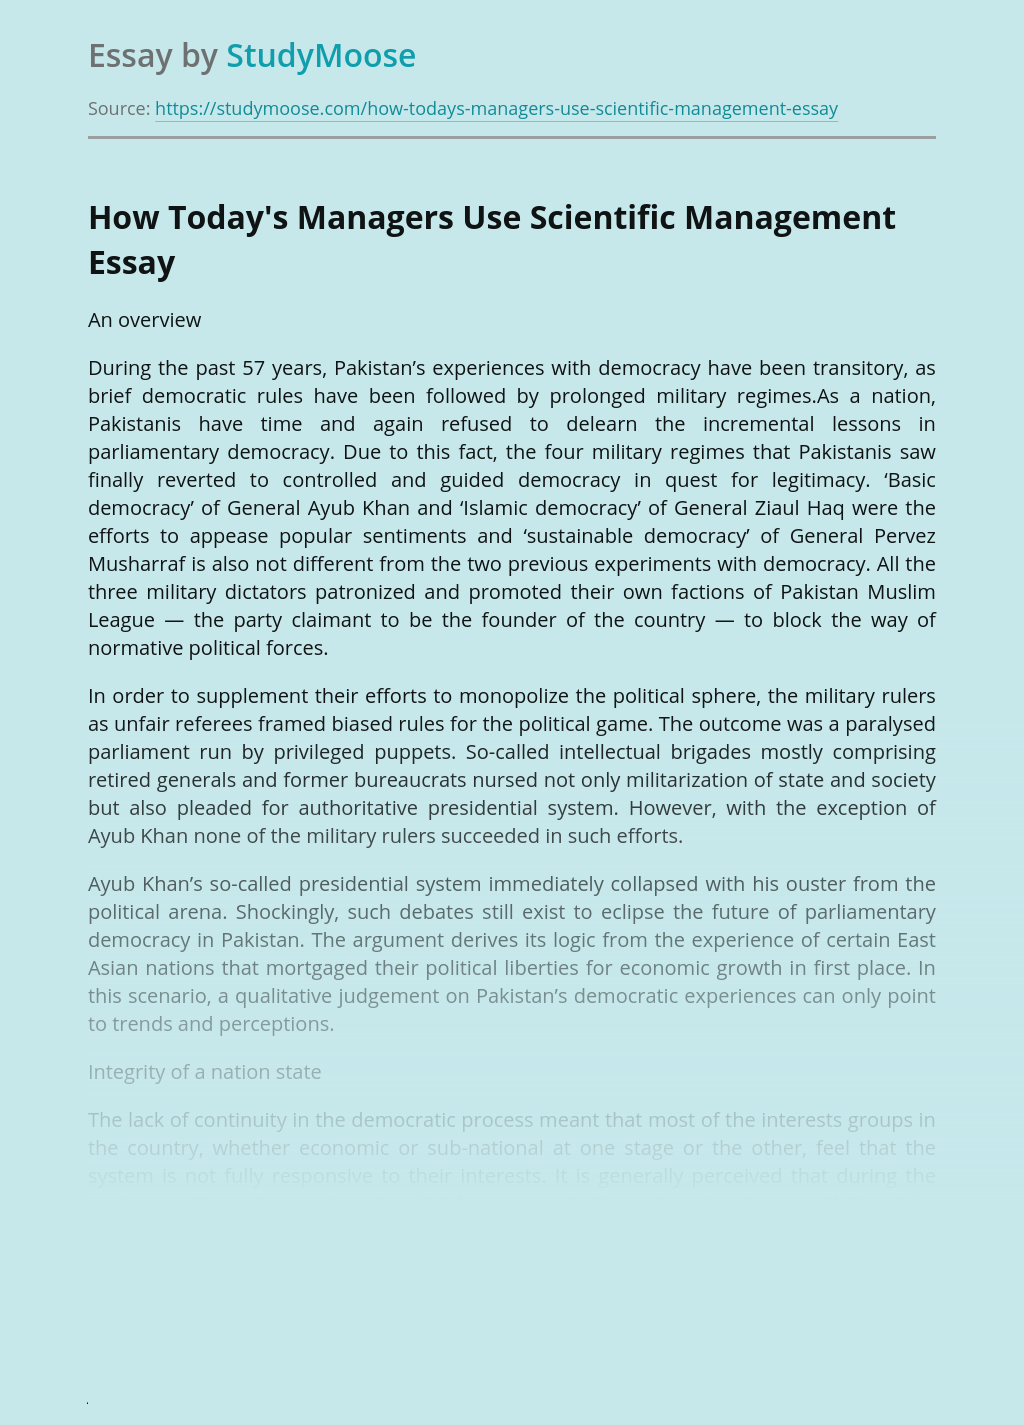 How Today's Managers Use Scientific Management